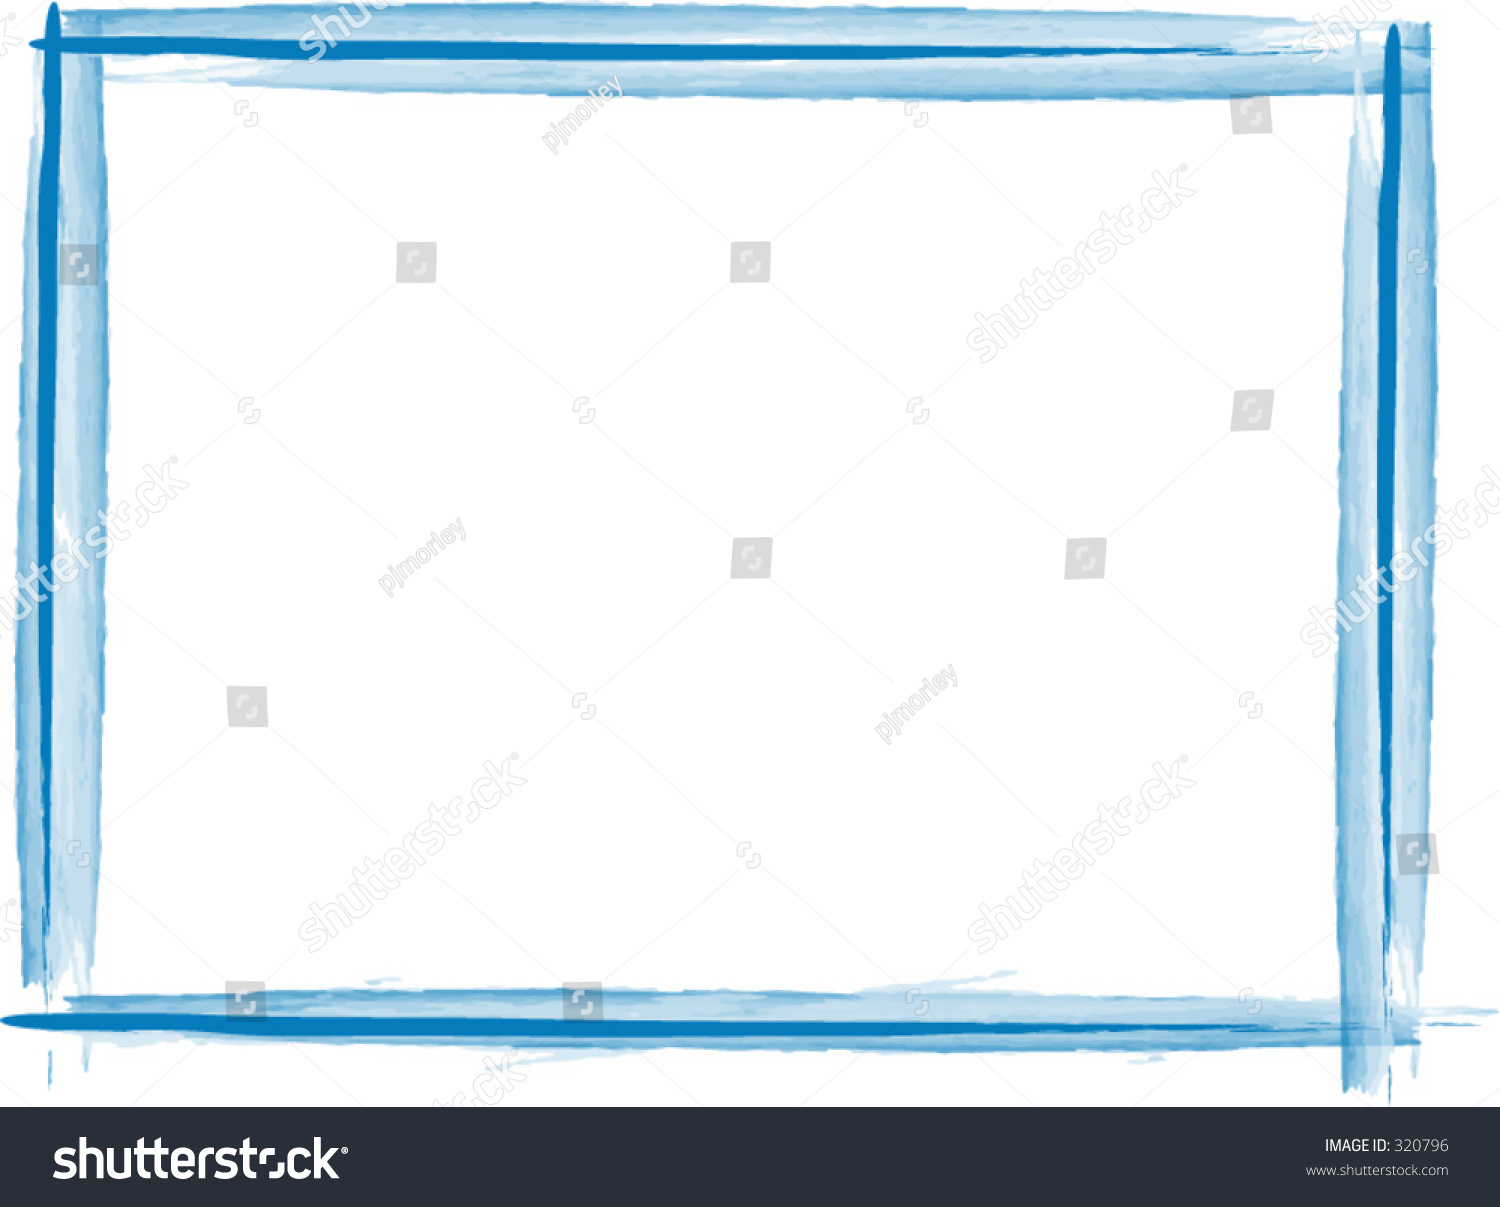 photoshop how to make layer transparent